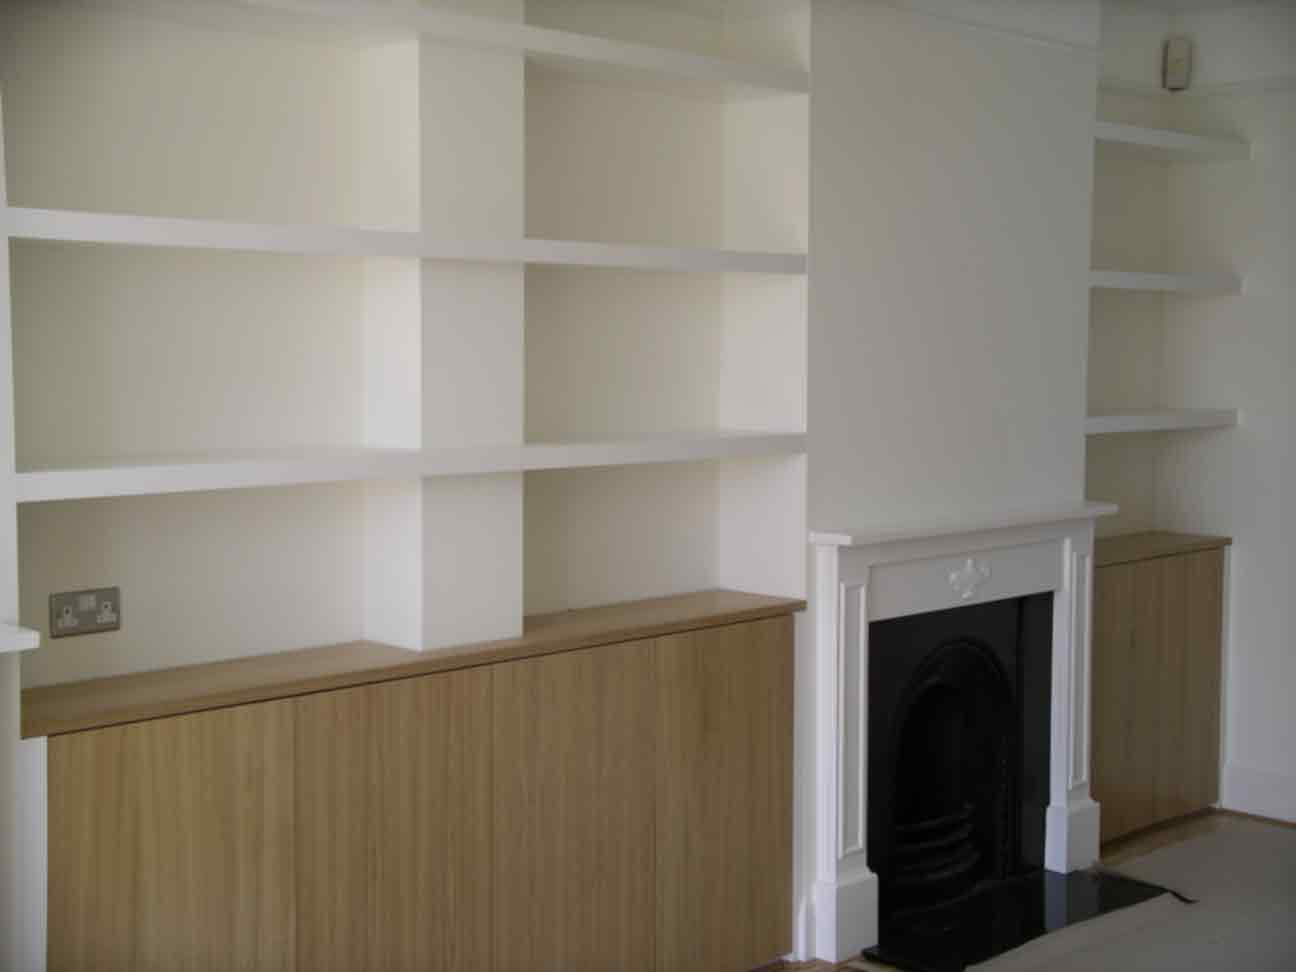 Built In Cupboards Bespoke Design Peter Henderson Furniture Pertaining To Handmade Cupboards (Image 5 of 15)